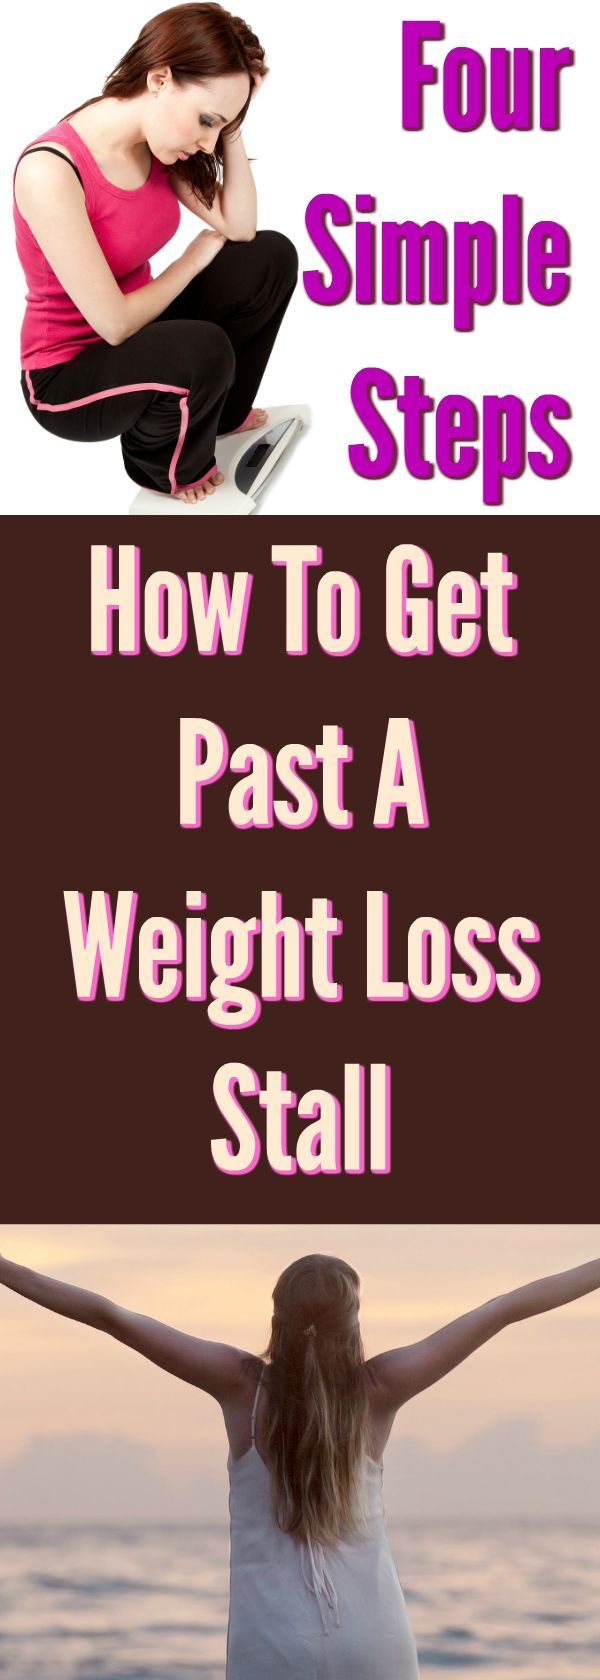 Why do you stop losing weight when dieting? And How to break a weight loss plateau? Read four nutrition tips to break a weight stall easily and start losing weight in a week.